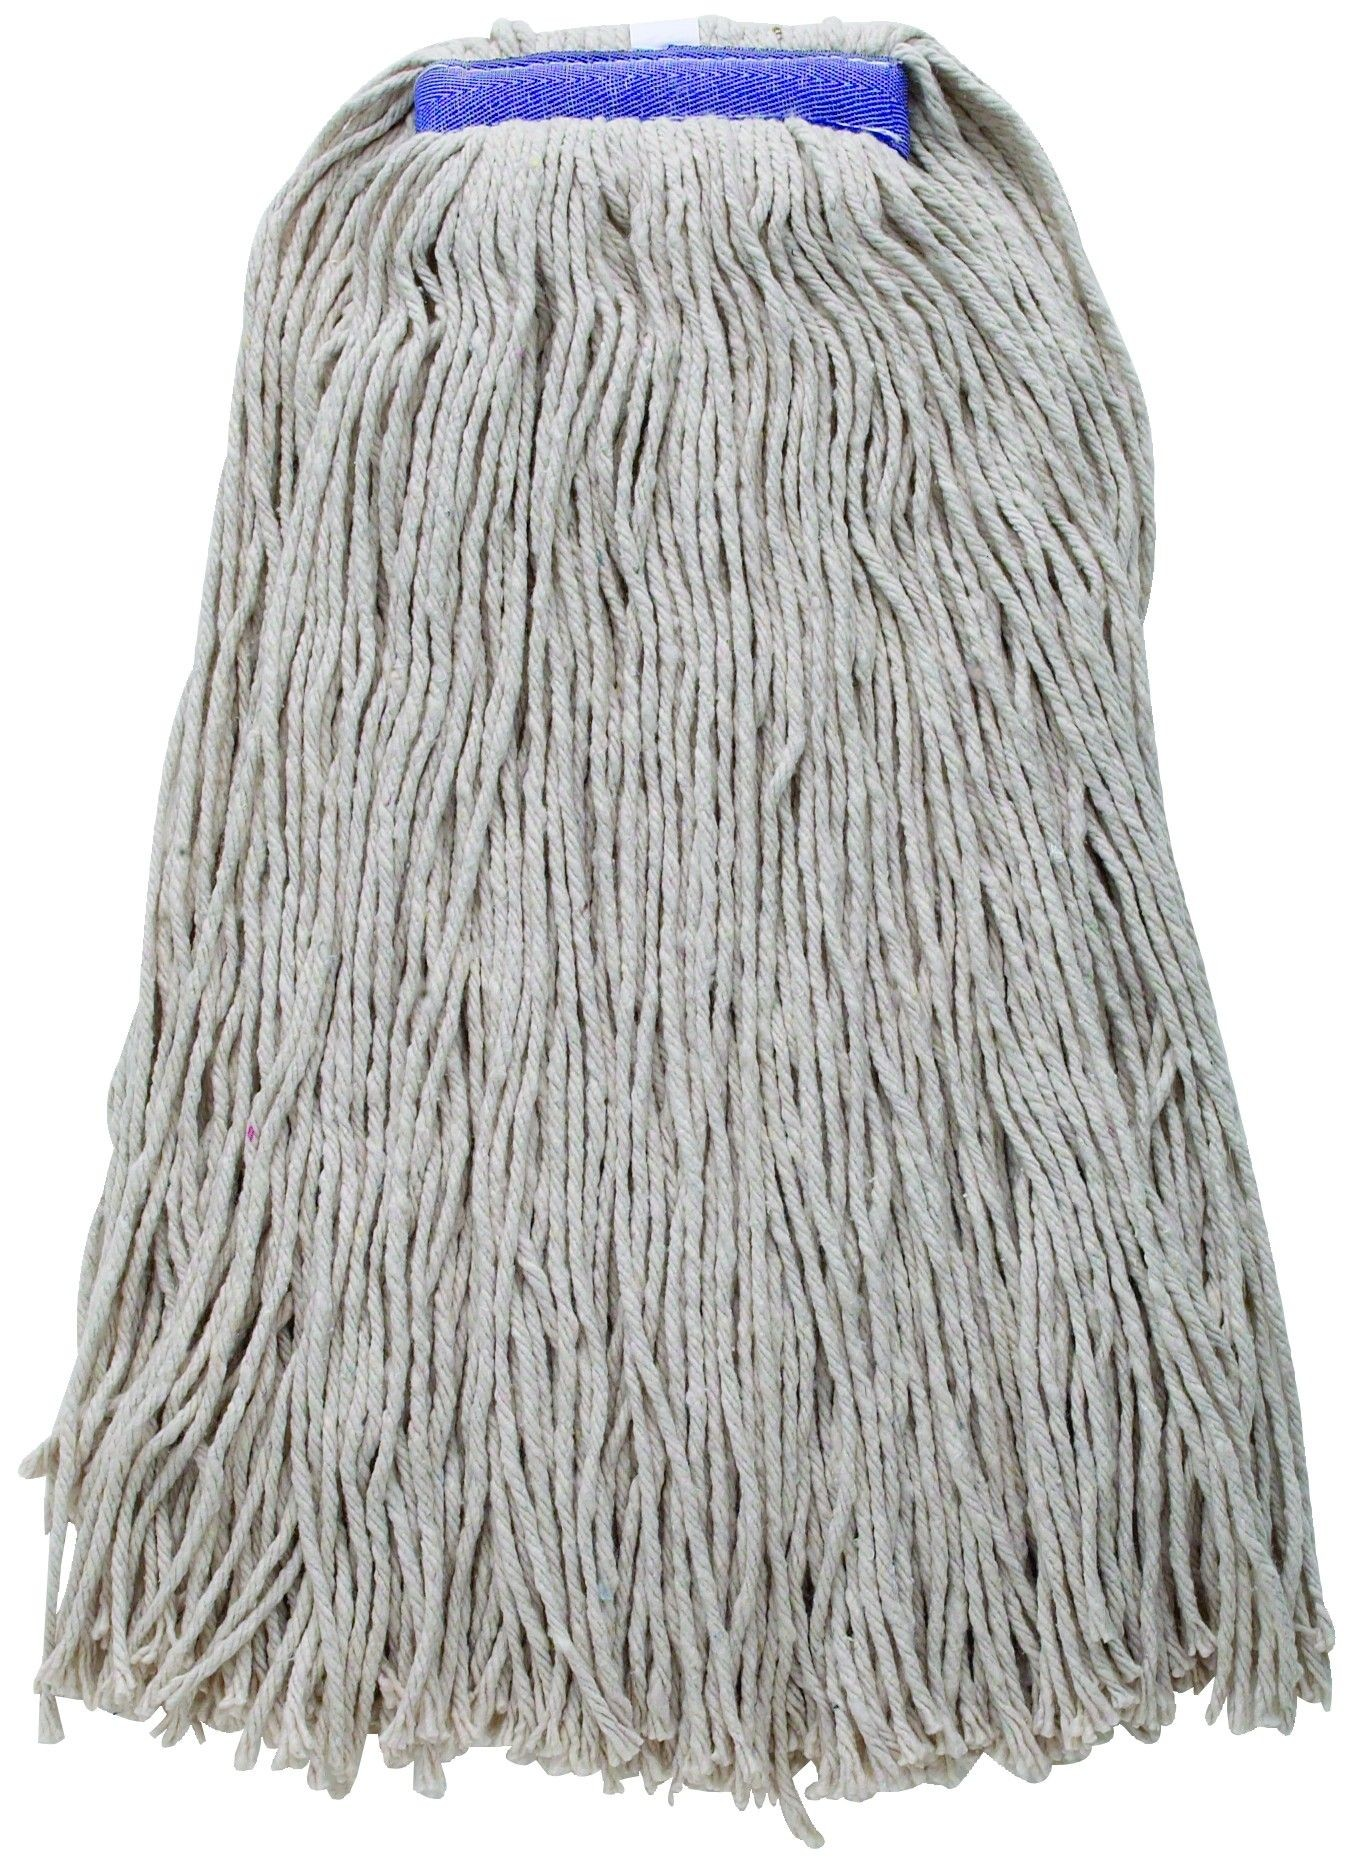 32 Oz,800G White Yarn Mop Head, Cut Head